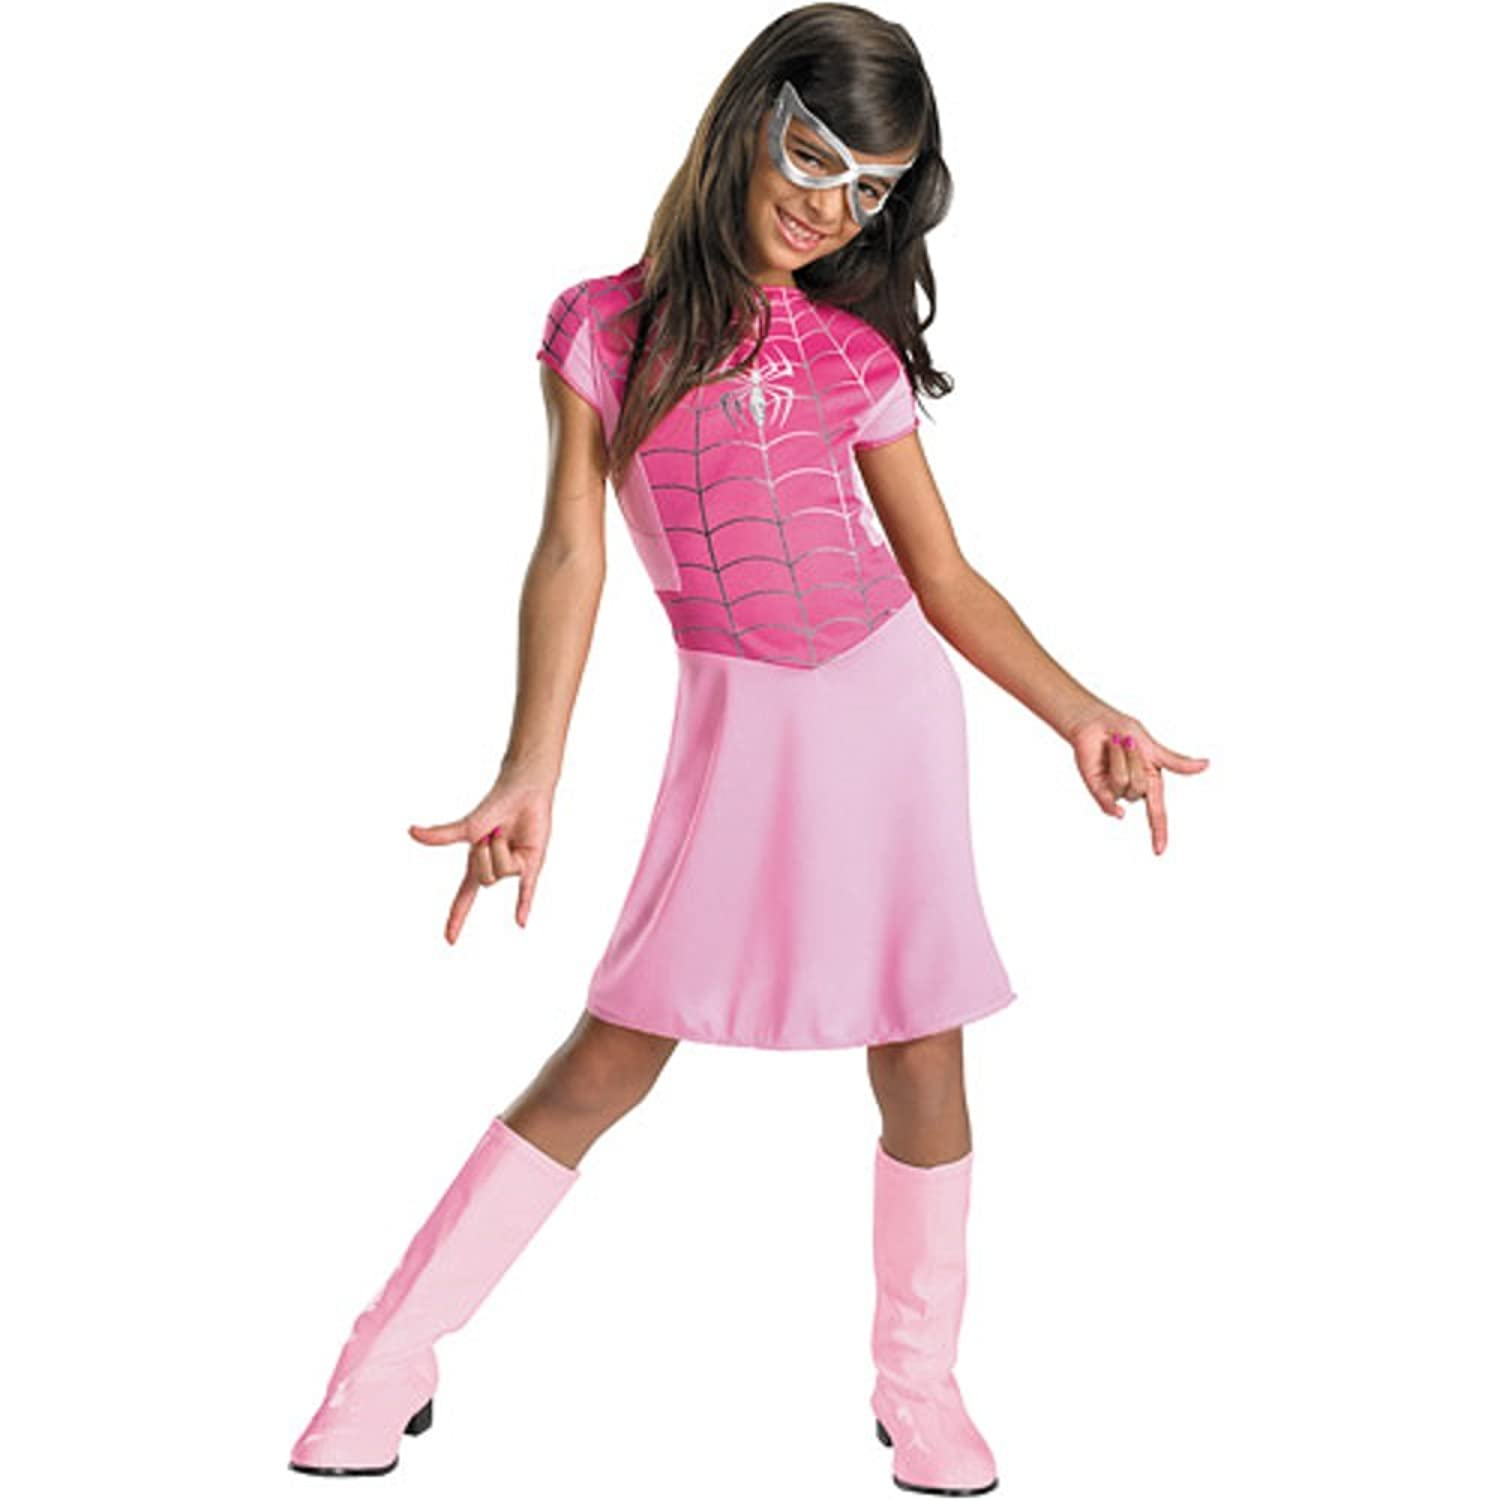 Amazon.com Women of Marvel Pink Spider-Girl Costume Spider Girl Dress Spidergirl Girls Med Clothing  sc 1 st  Amazon.com & Amazon.com: Women of Marvel Pink Spider-Girl Costume Spider Girl ...